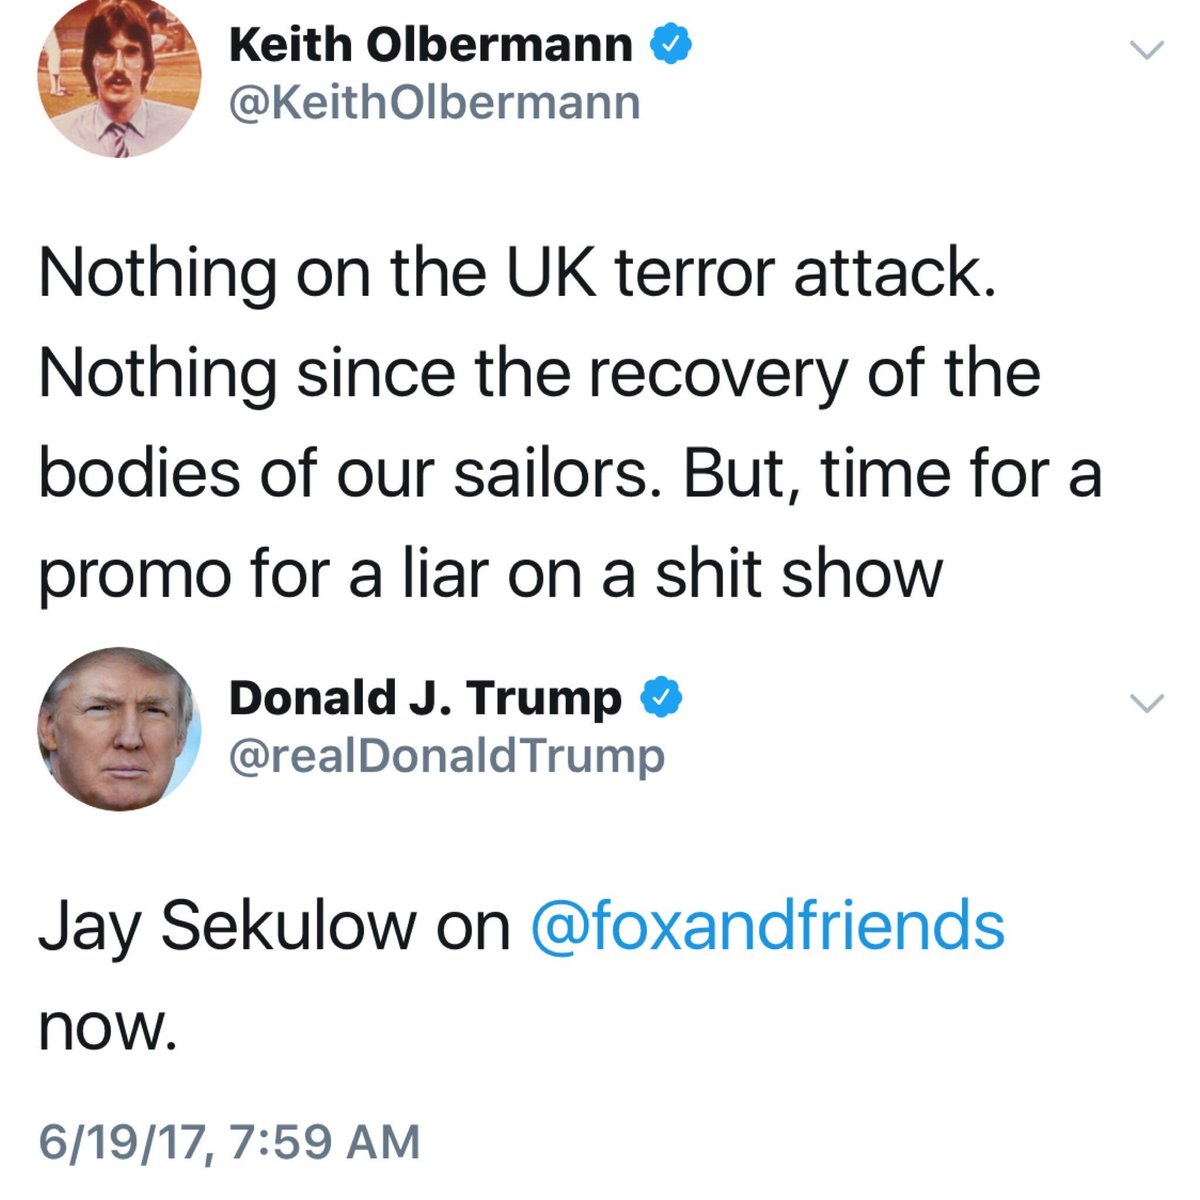 So @realDonaldTrump deleted his promo tweet for his ambulance-chaser-Nathan-Thurm-spokesman's hit on State-Run TV? Why?